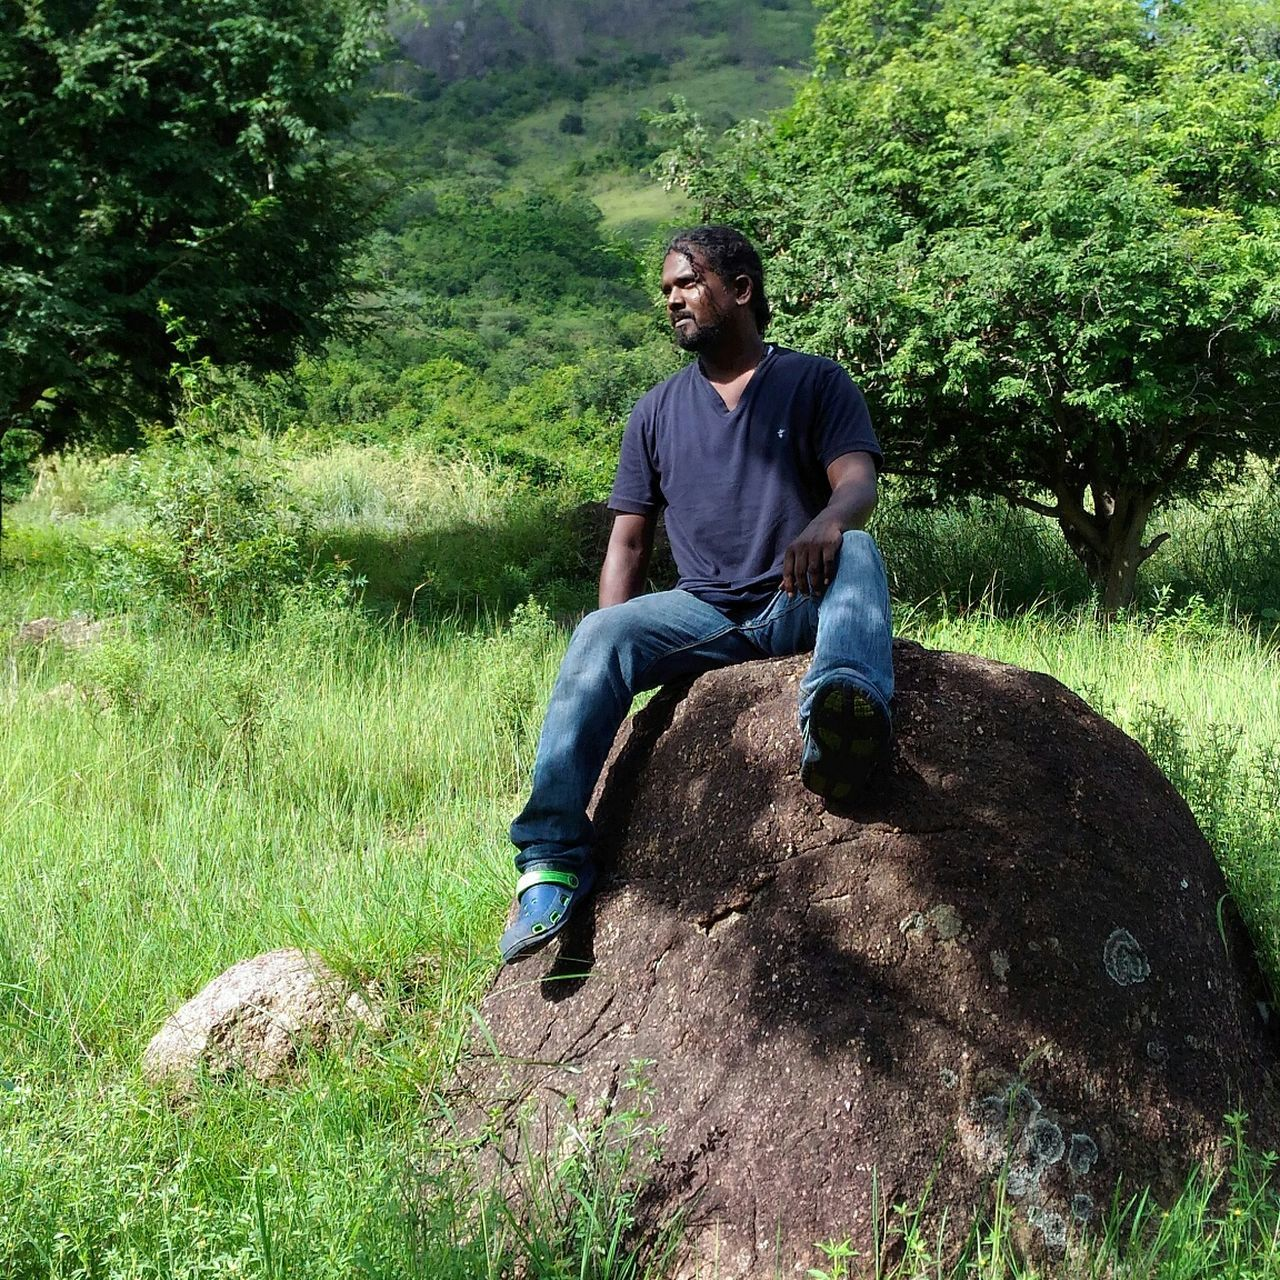 casual clothing, grass, sitting, real people, field, full length, mid adult men, jeans, tree, growth, day, nature, outdoors, relaxation, one person, young adult